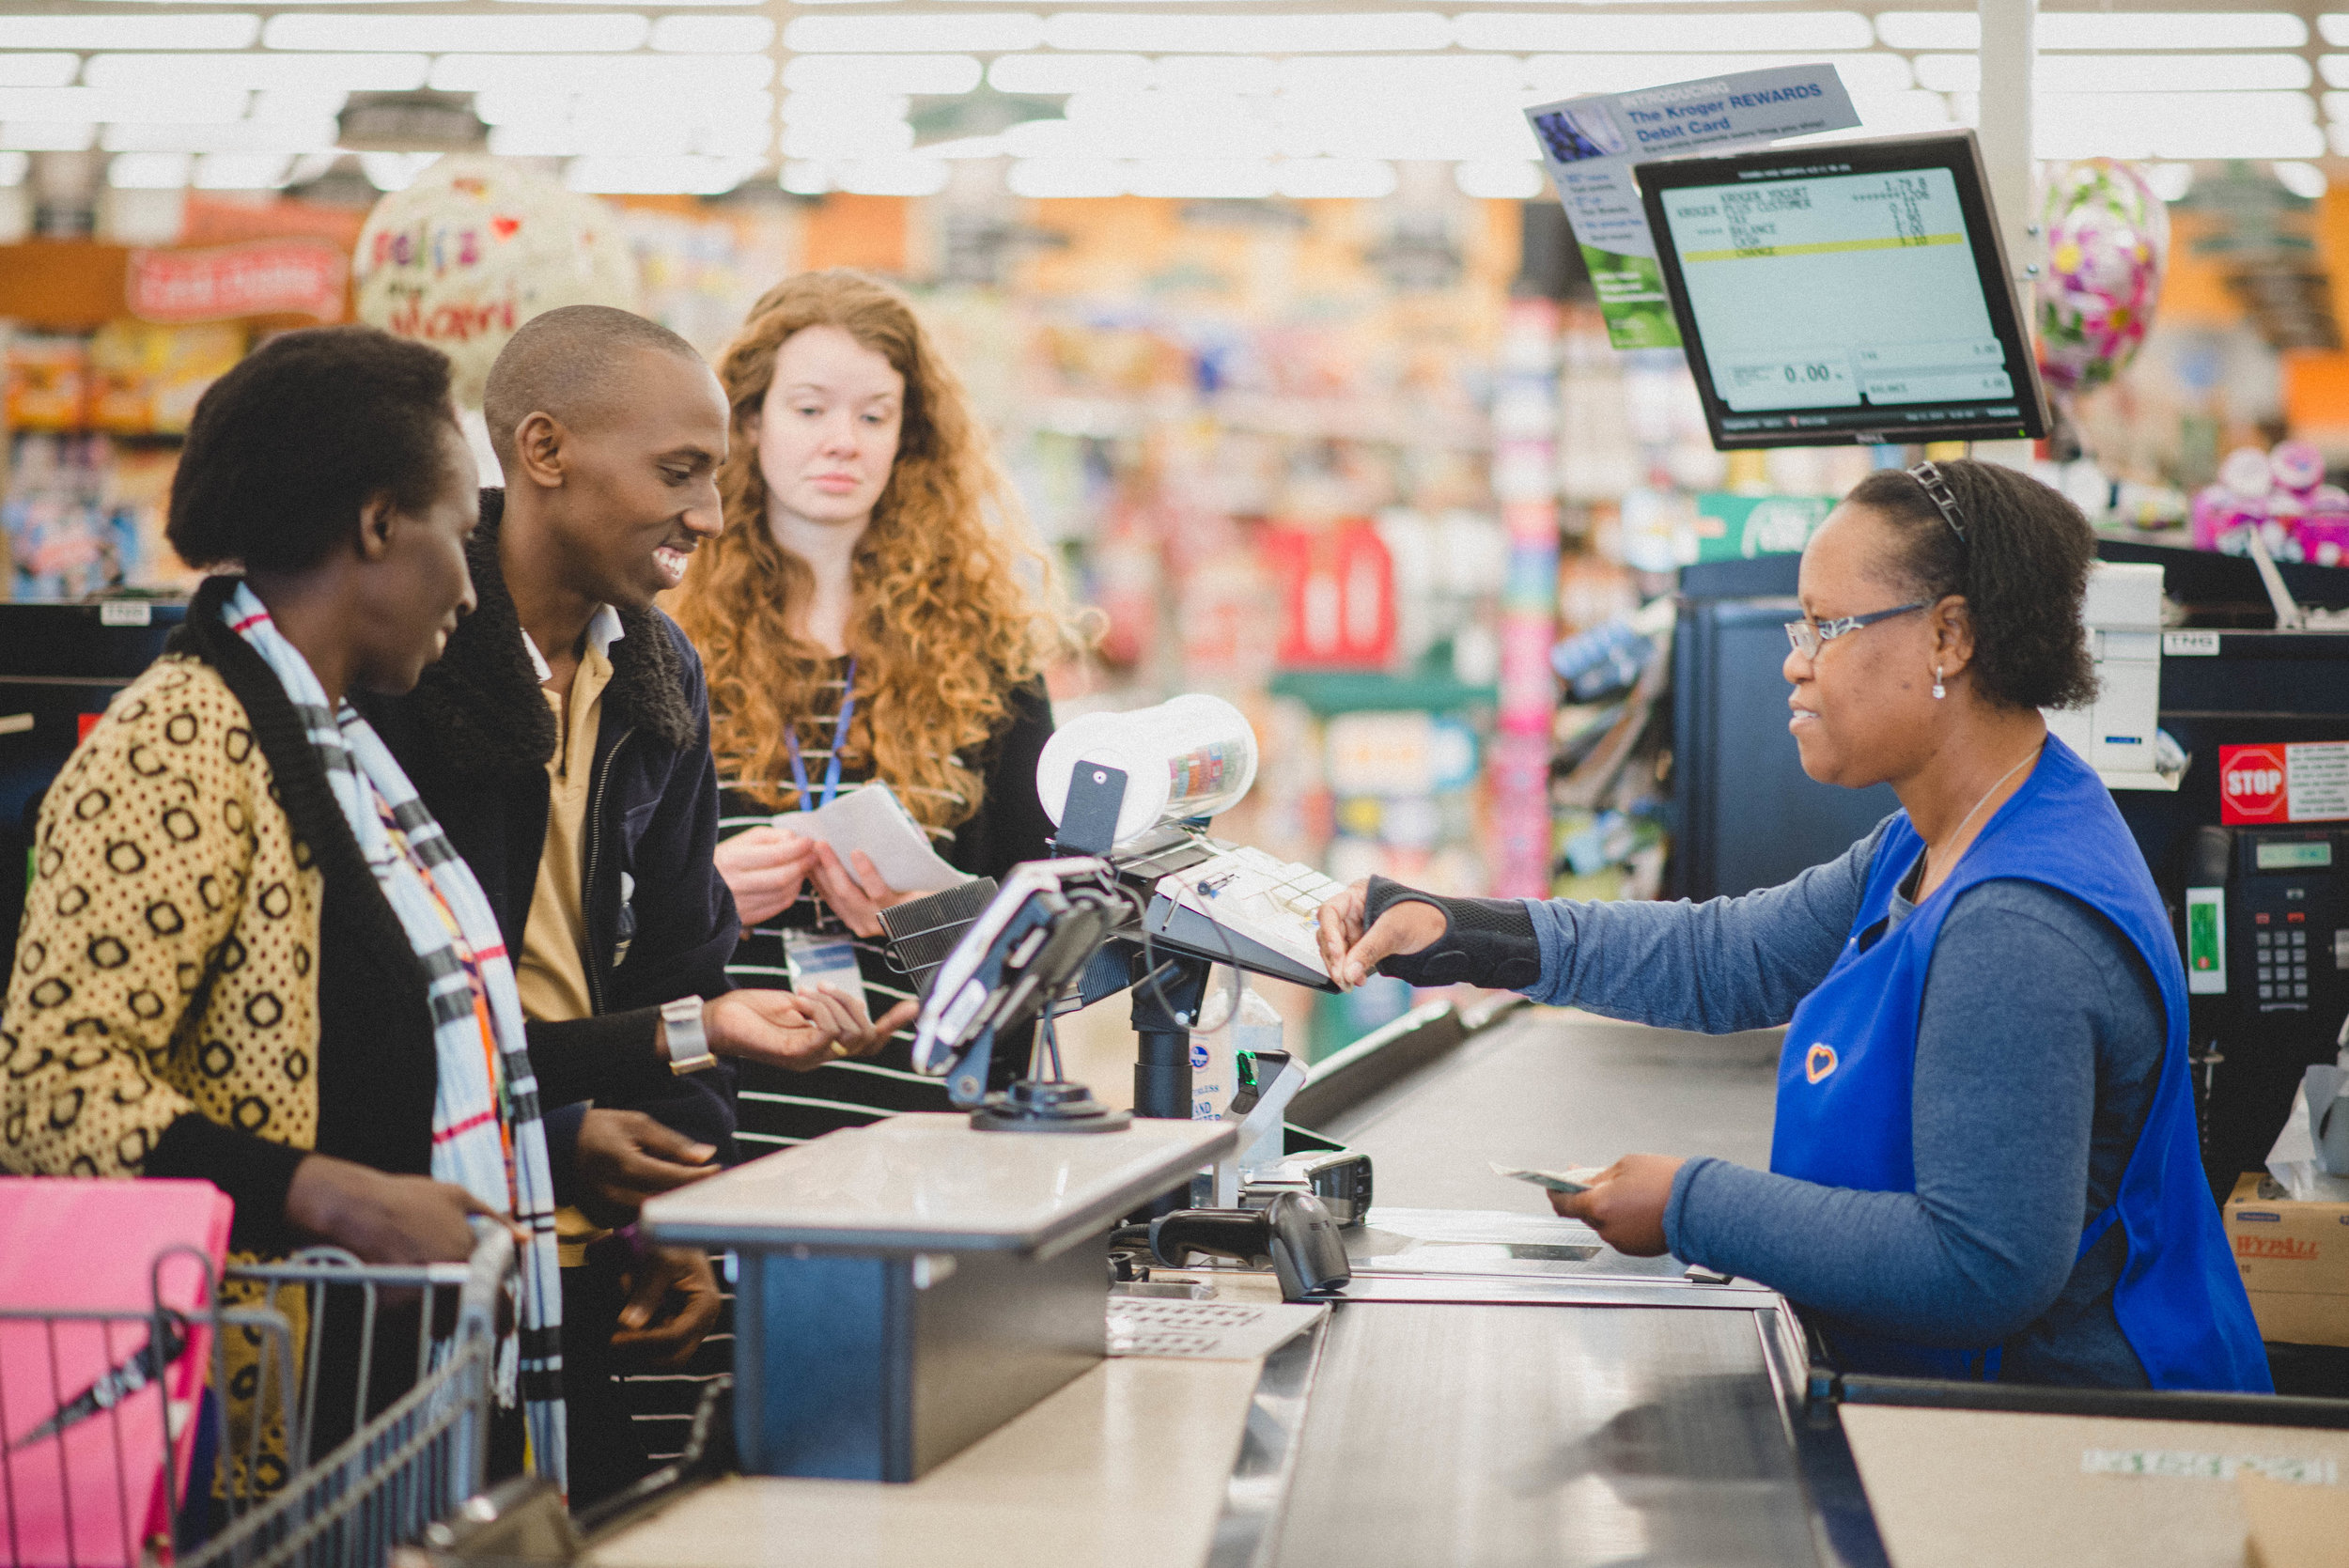 Students practiced the English they had learned to go through the checkout process at a local grocery store with confidence.